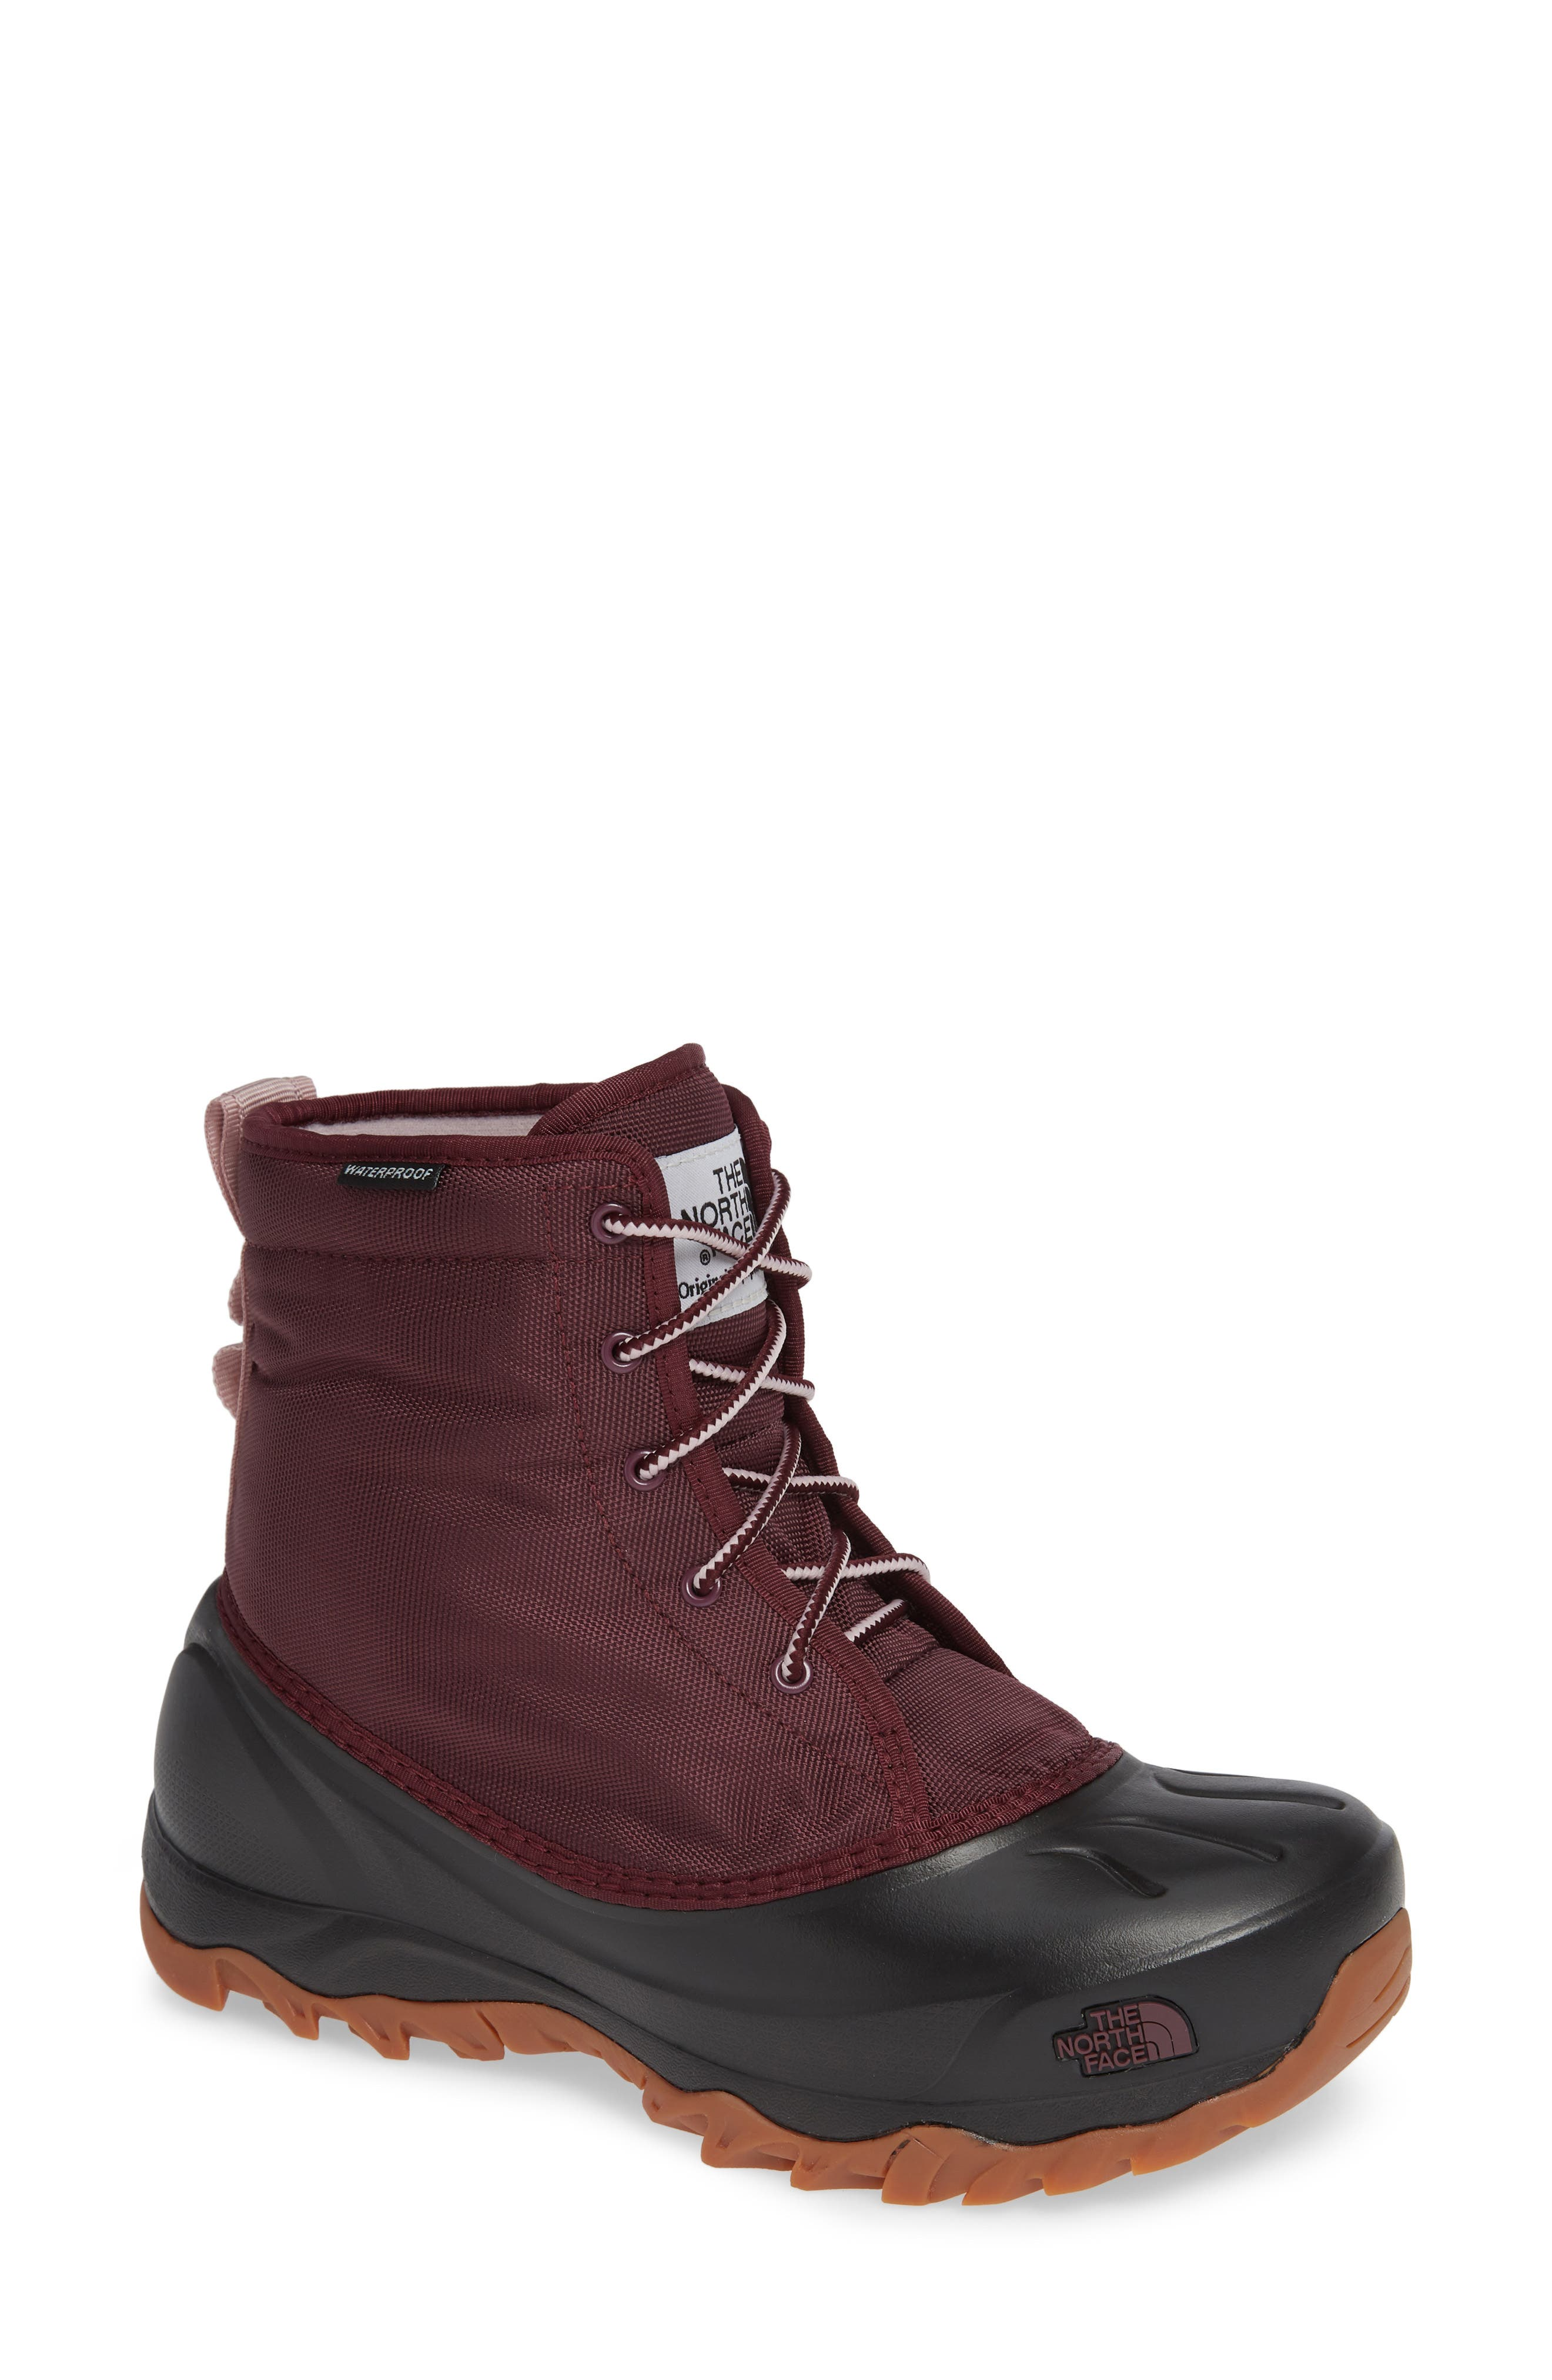 Tsumoru Waterproof Insulated Snow Boot,                         Main,                         color, FIG/ BURNISHED LILAC